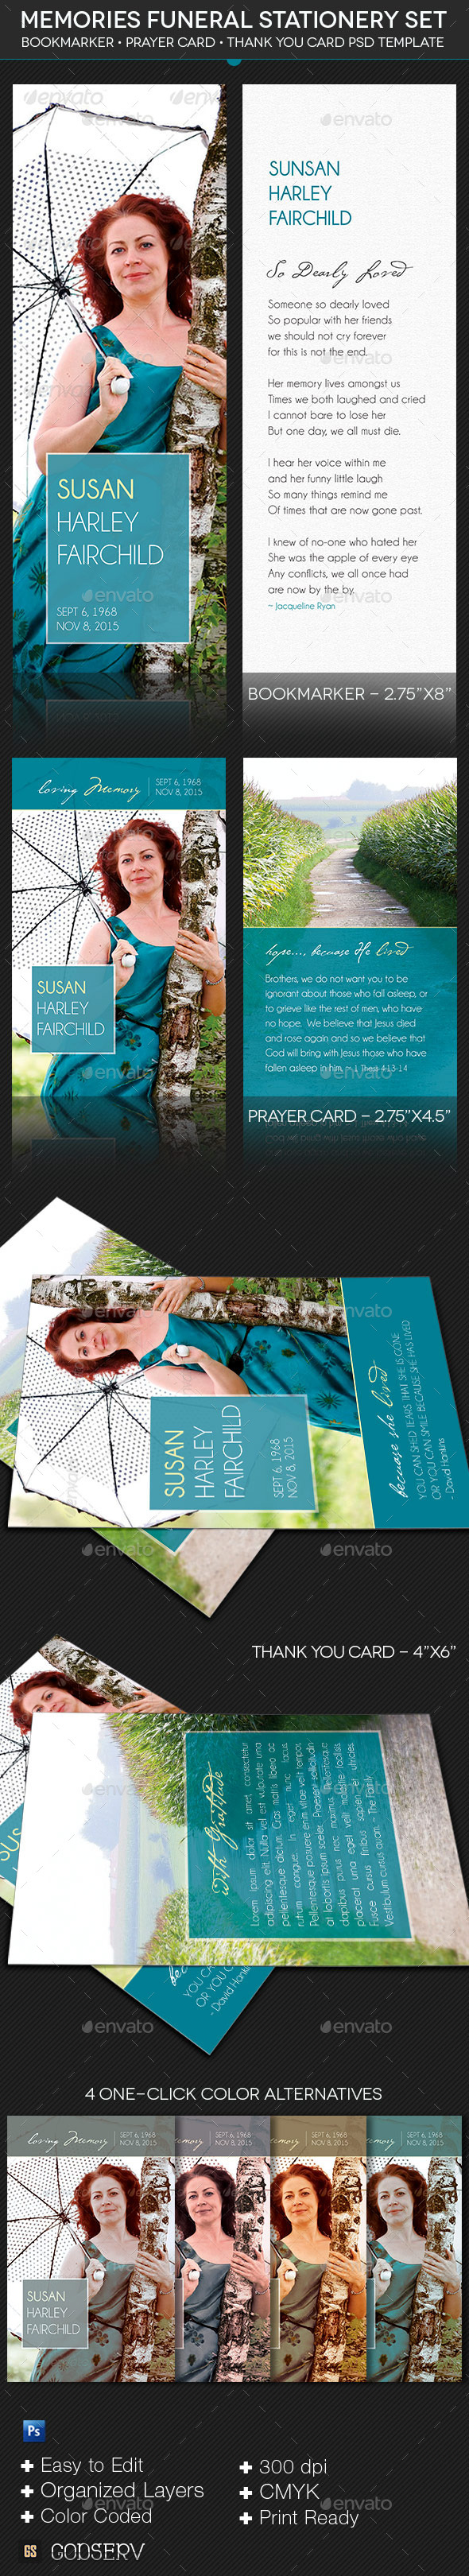 GraphicRiver Memories Funeral Stationery Template Set 9966829